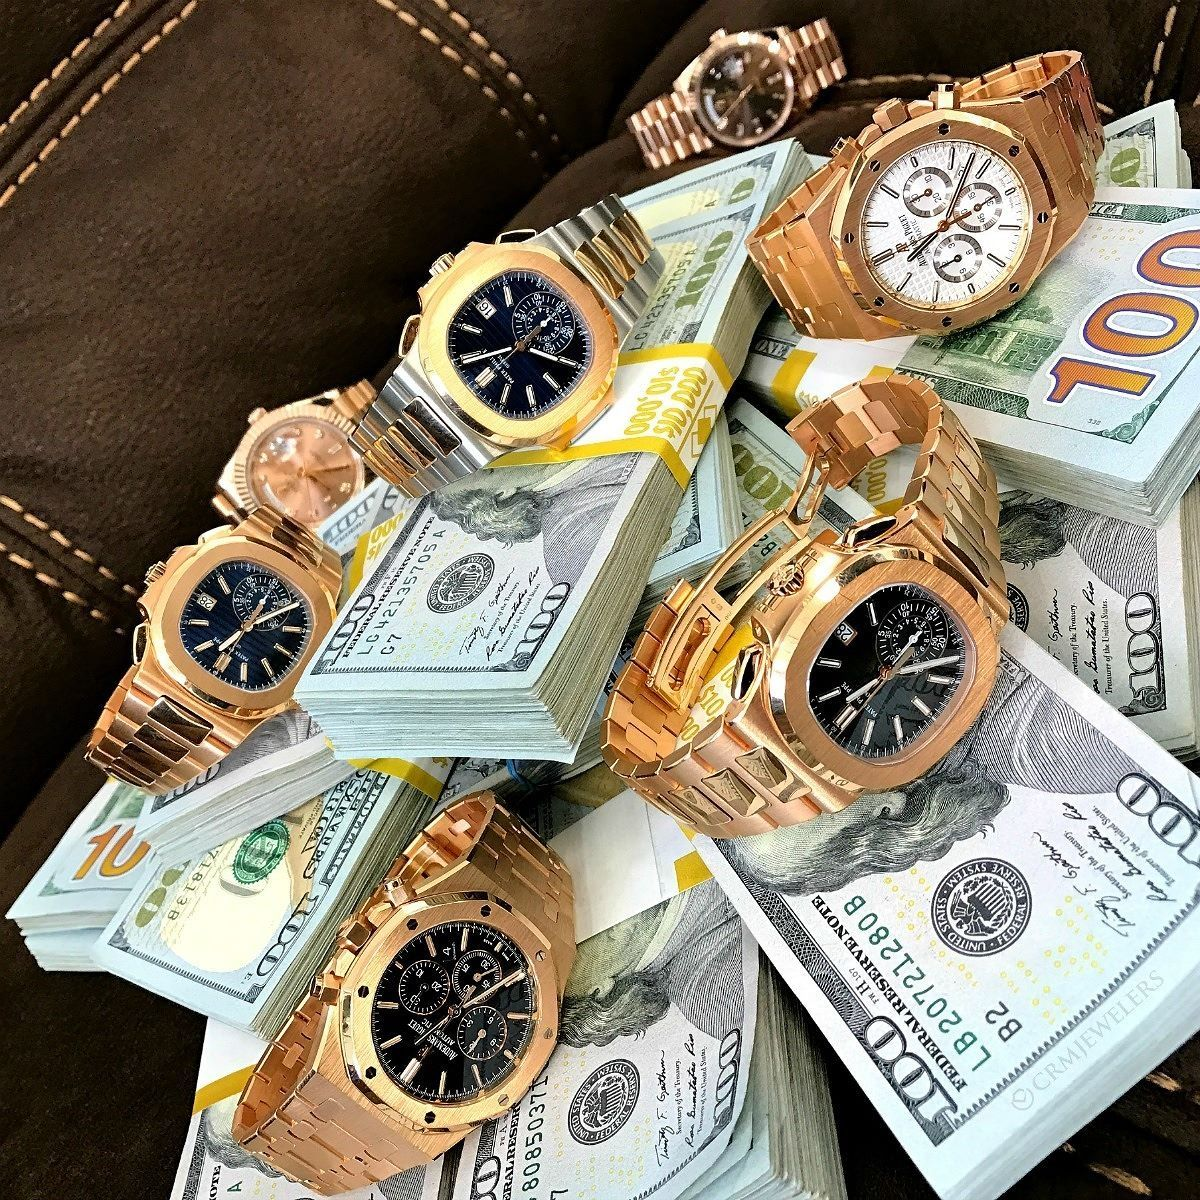 Rose Gold And Blue Benji S The Two Best Things In Life Which One Of These Rose Gold Beauties Would You Pick Money Money Cash Gold Money